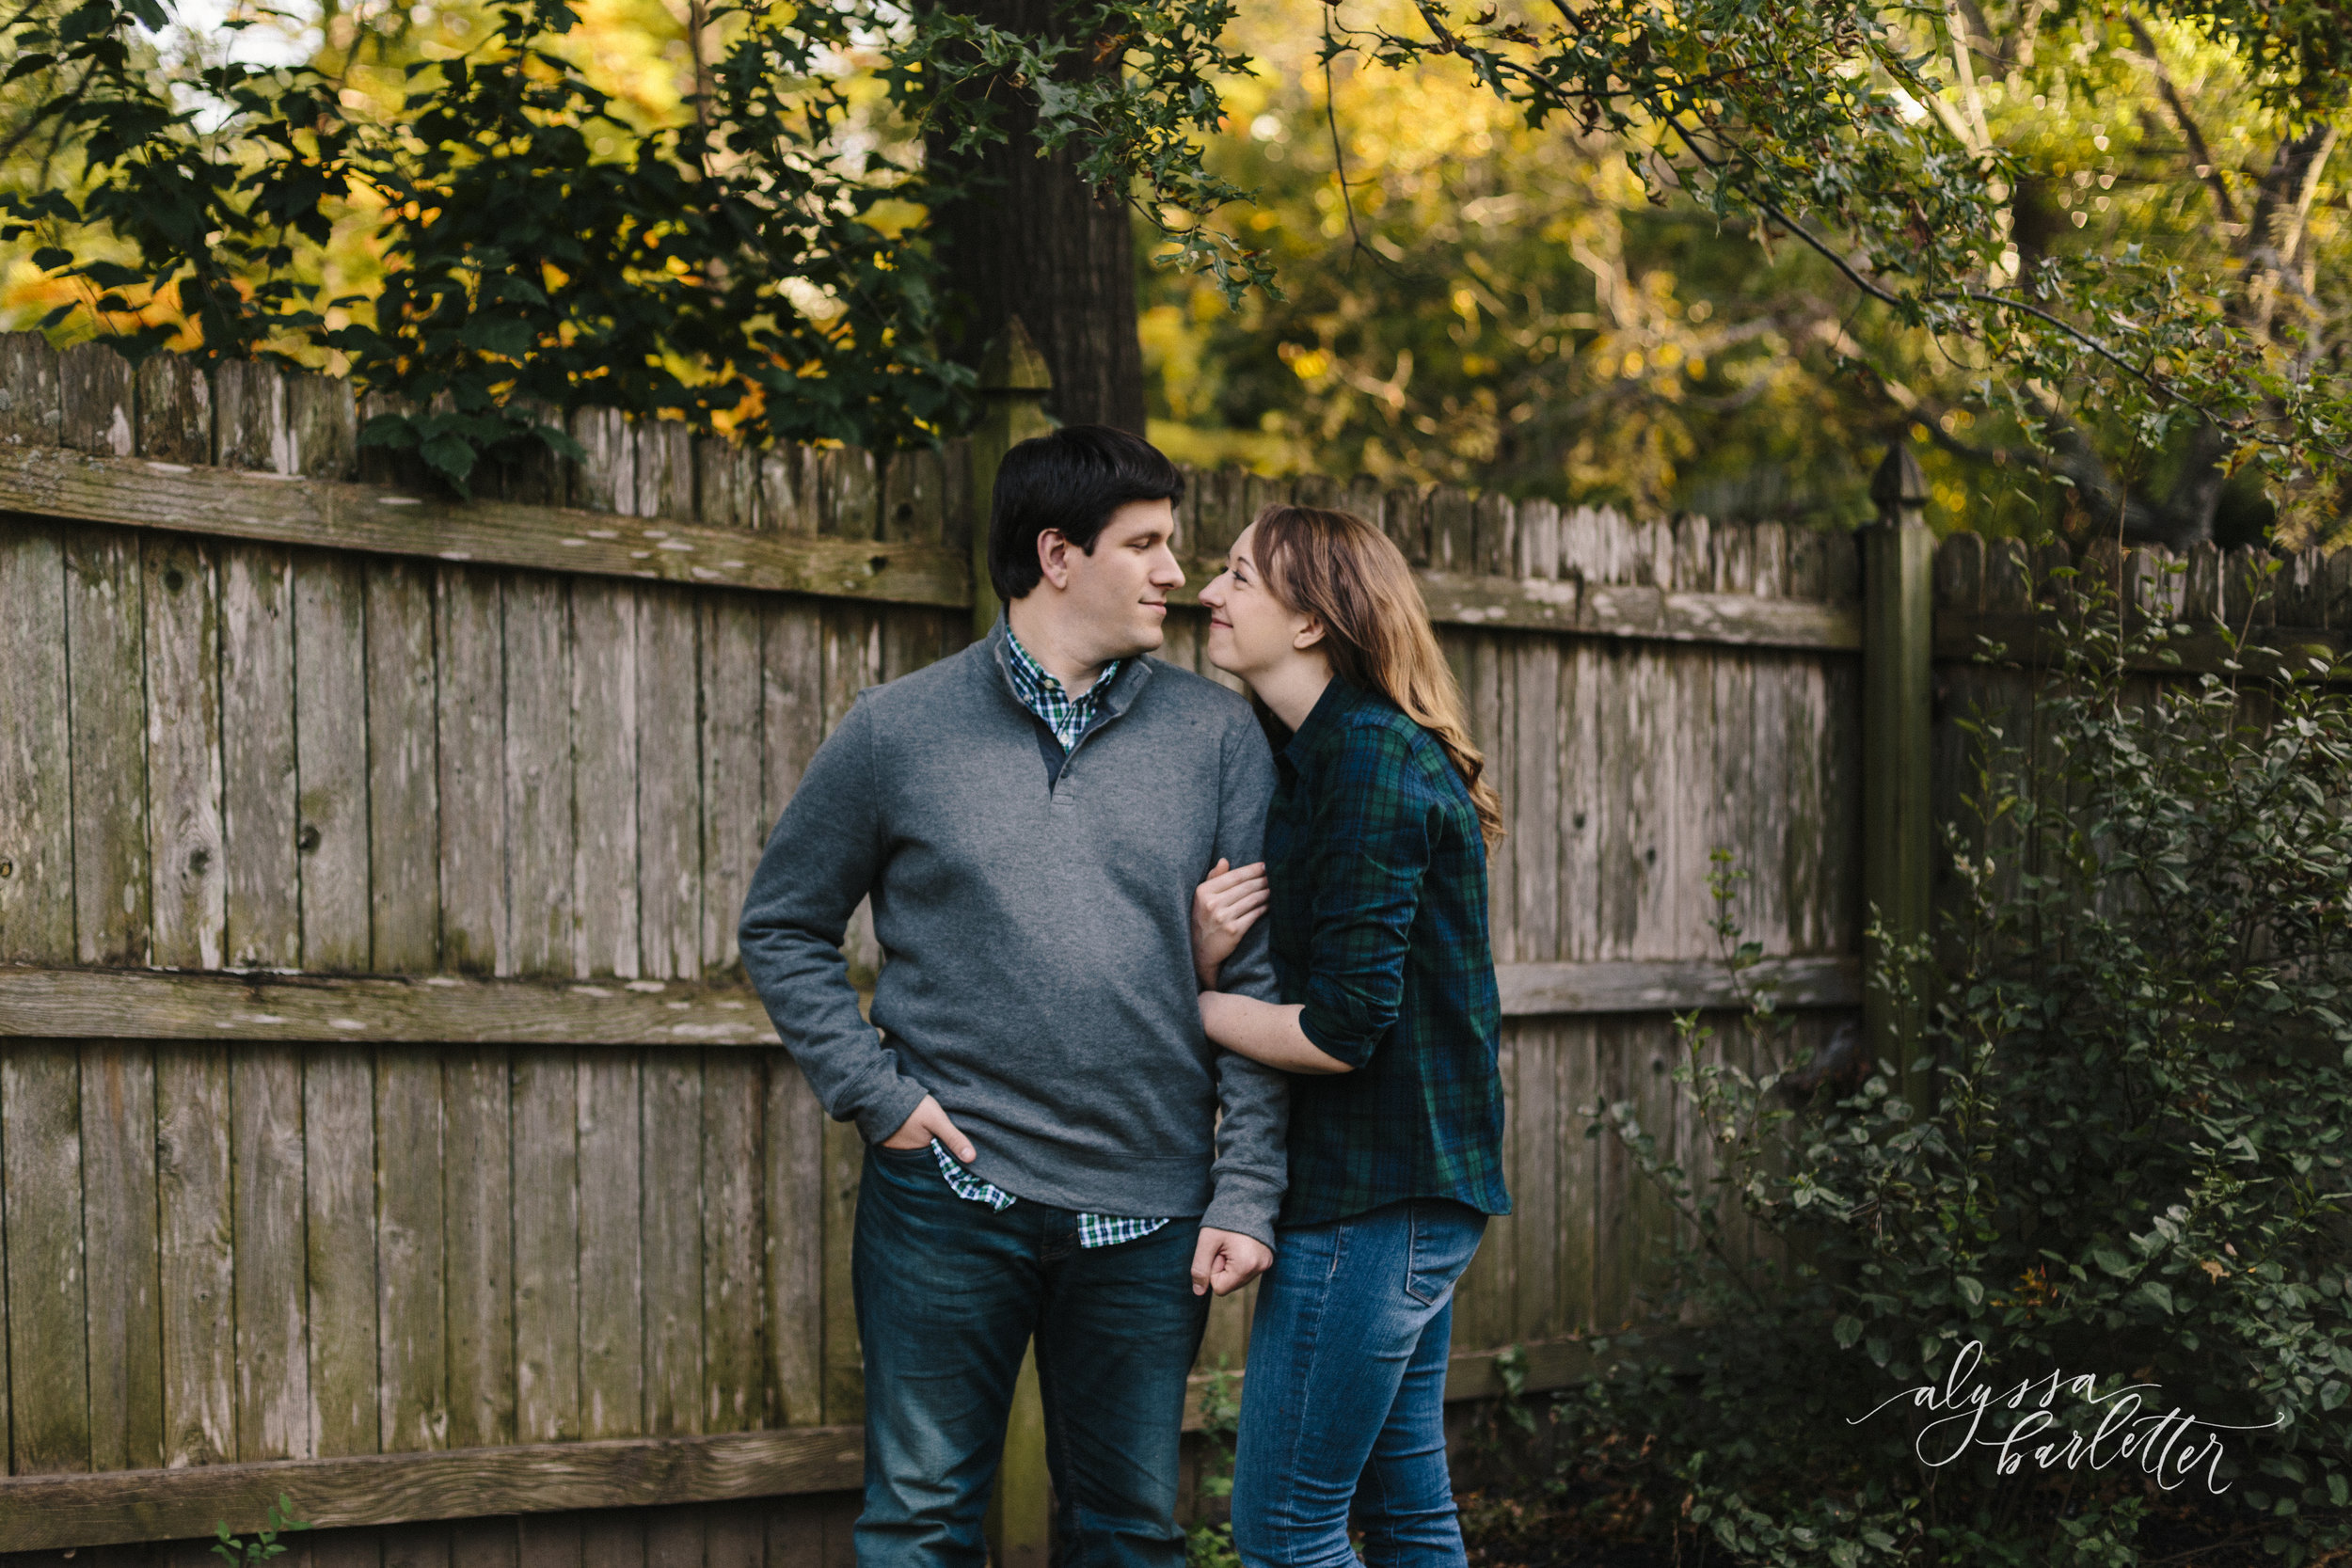 alyssa barletter photography olathe kansas engagement photos fall park jessica and kyle-1-6.jpg